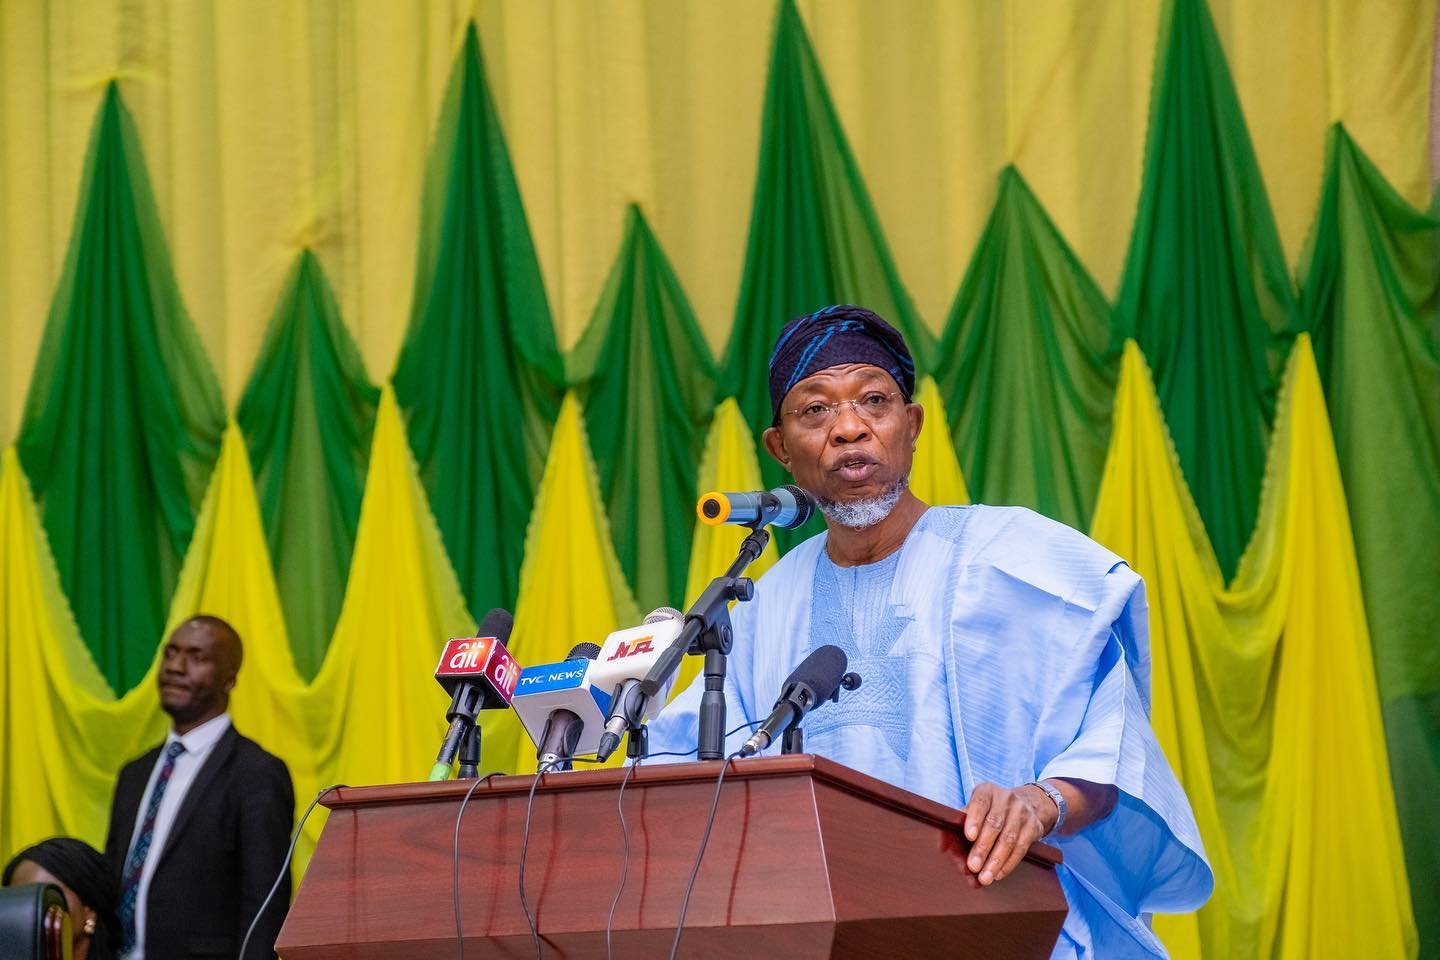 Aregbesola raises concerns about 'fair-weather' people joining APC